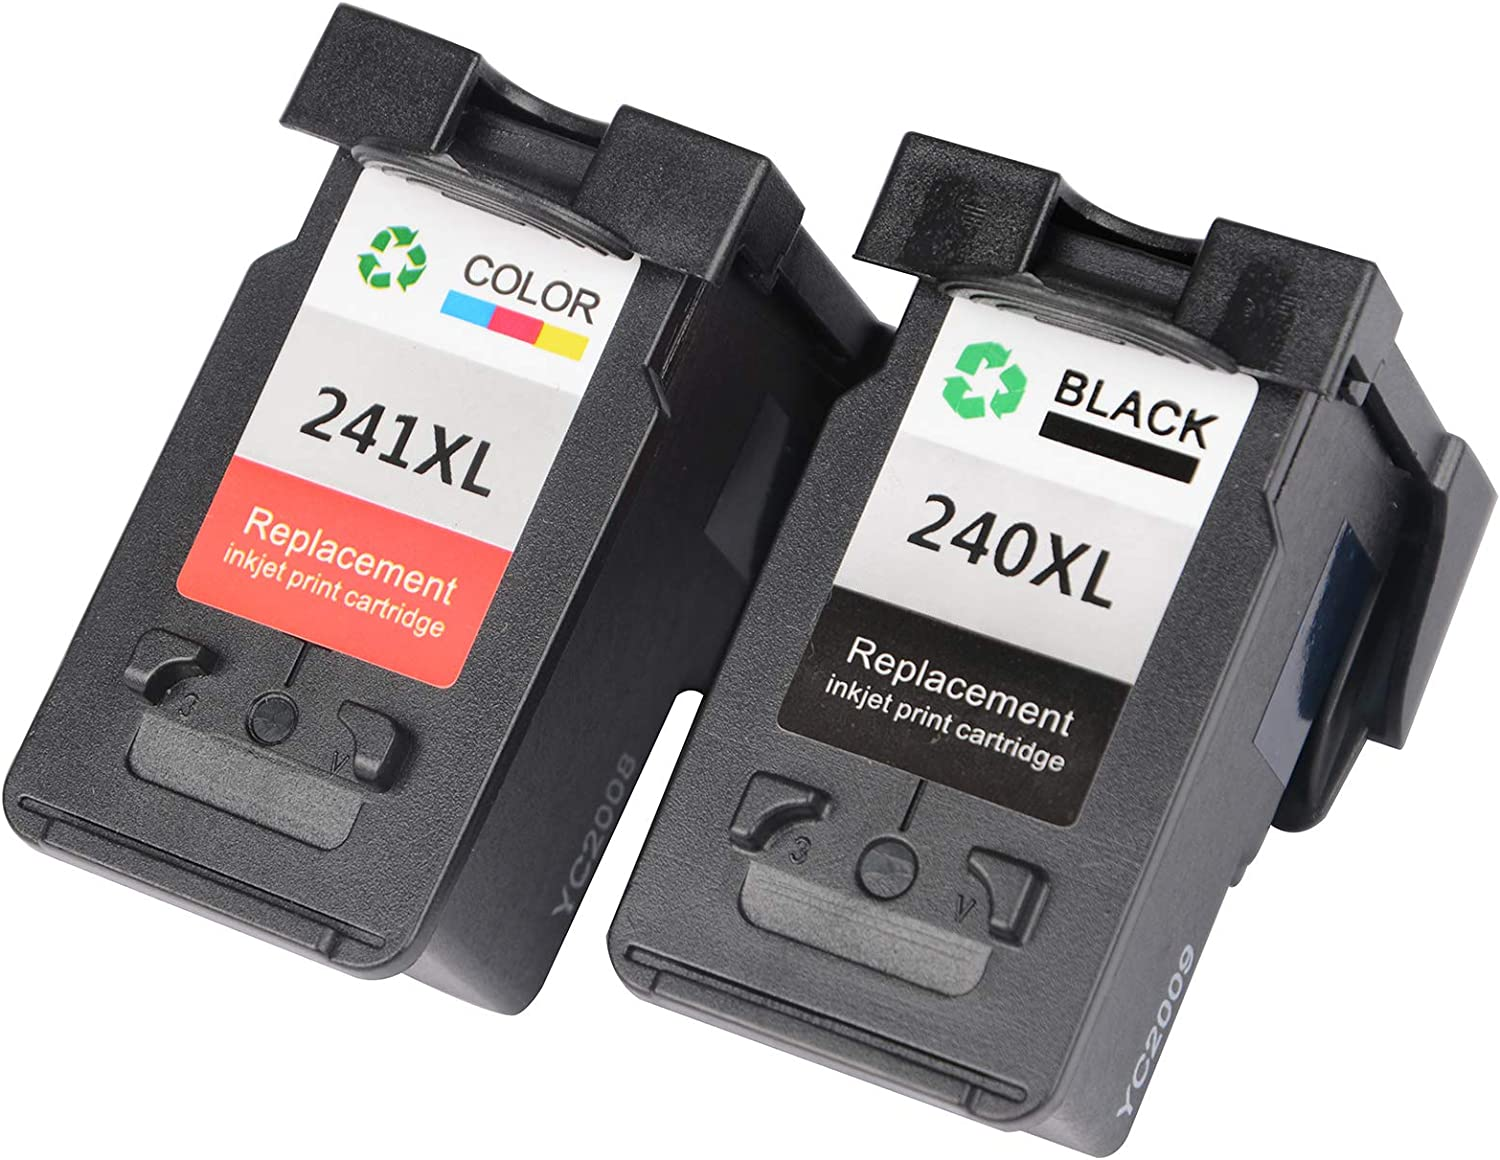 VineonTec Remanufactured for Canon PG-240XL 240XL CL-241XL 241XL Ink Cartridges Compatible for Pixma MG3620 TS5120 MX472 MX452 MG3522 MG2120 MG3520 MG3220 Printers.